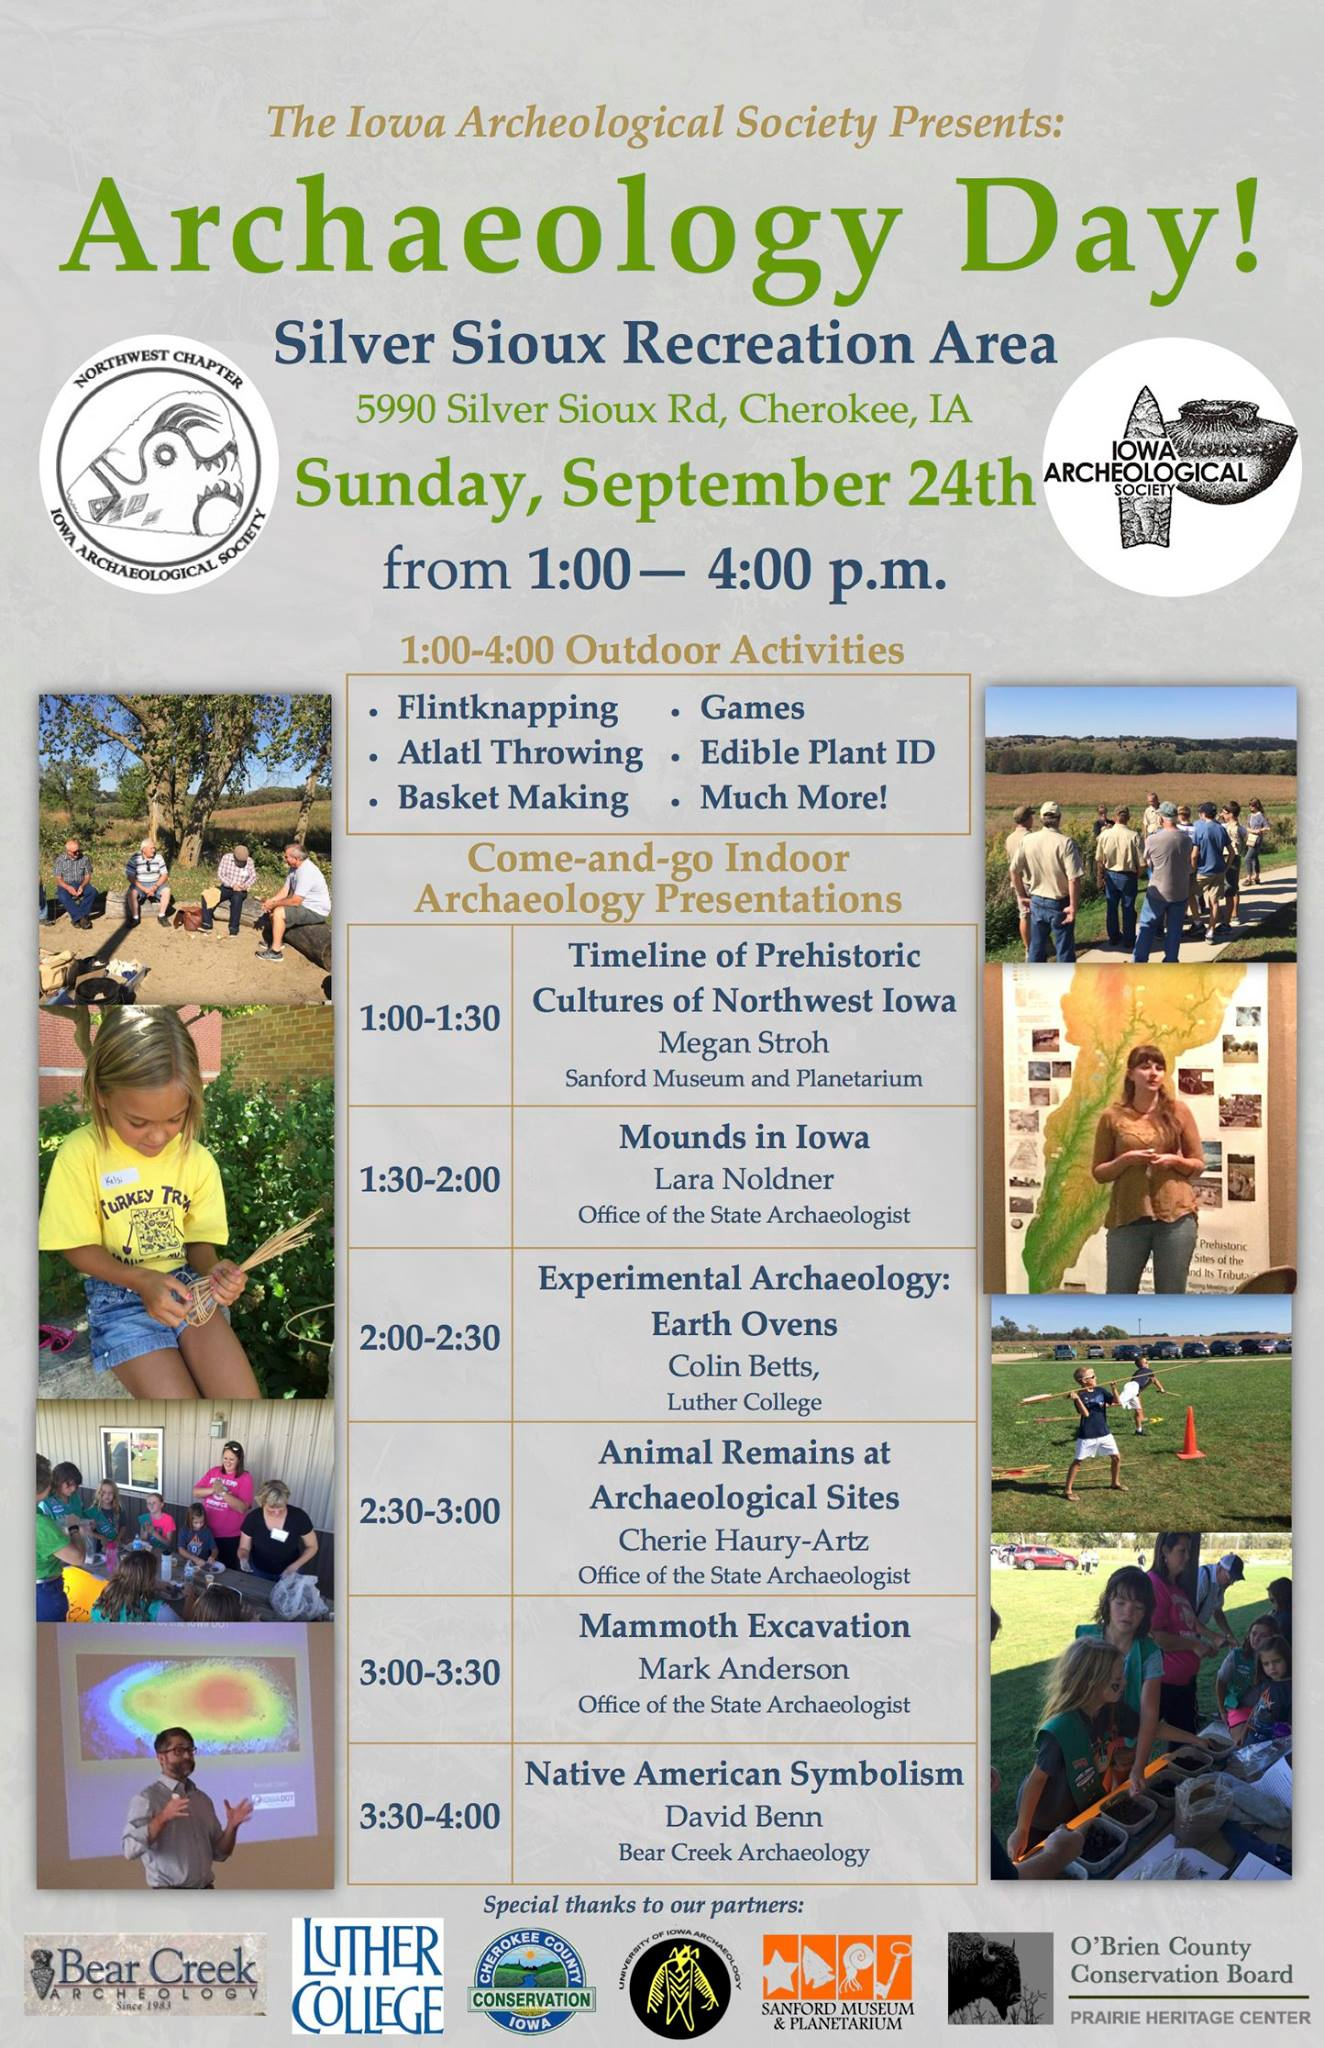 Promotional flyer for Little Sioux River Archaeology Day